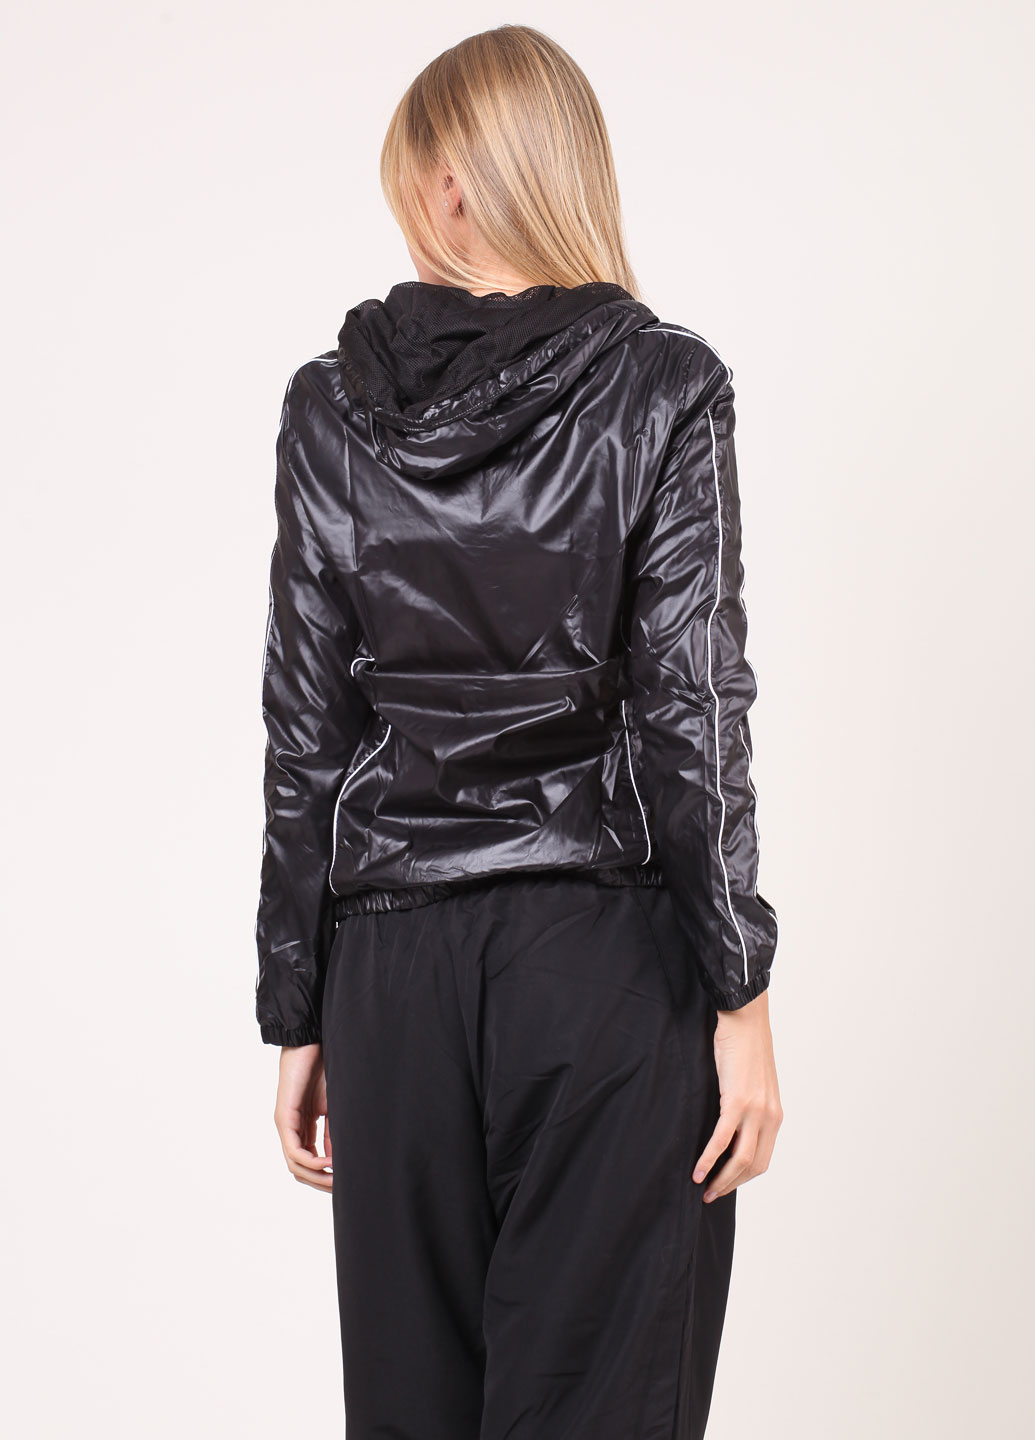 Shiny Black Puma Jacket Back View